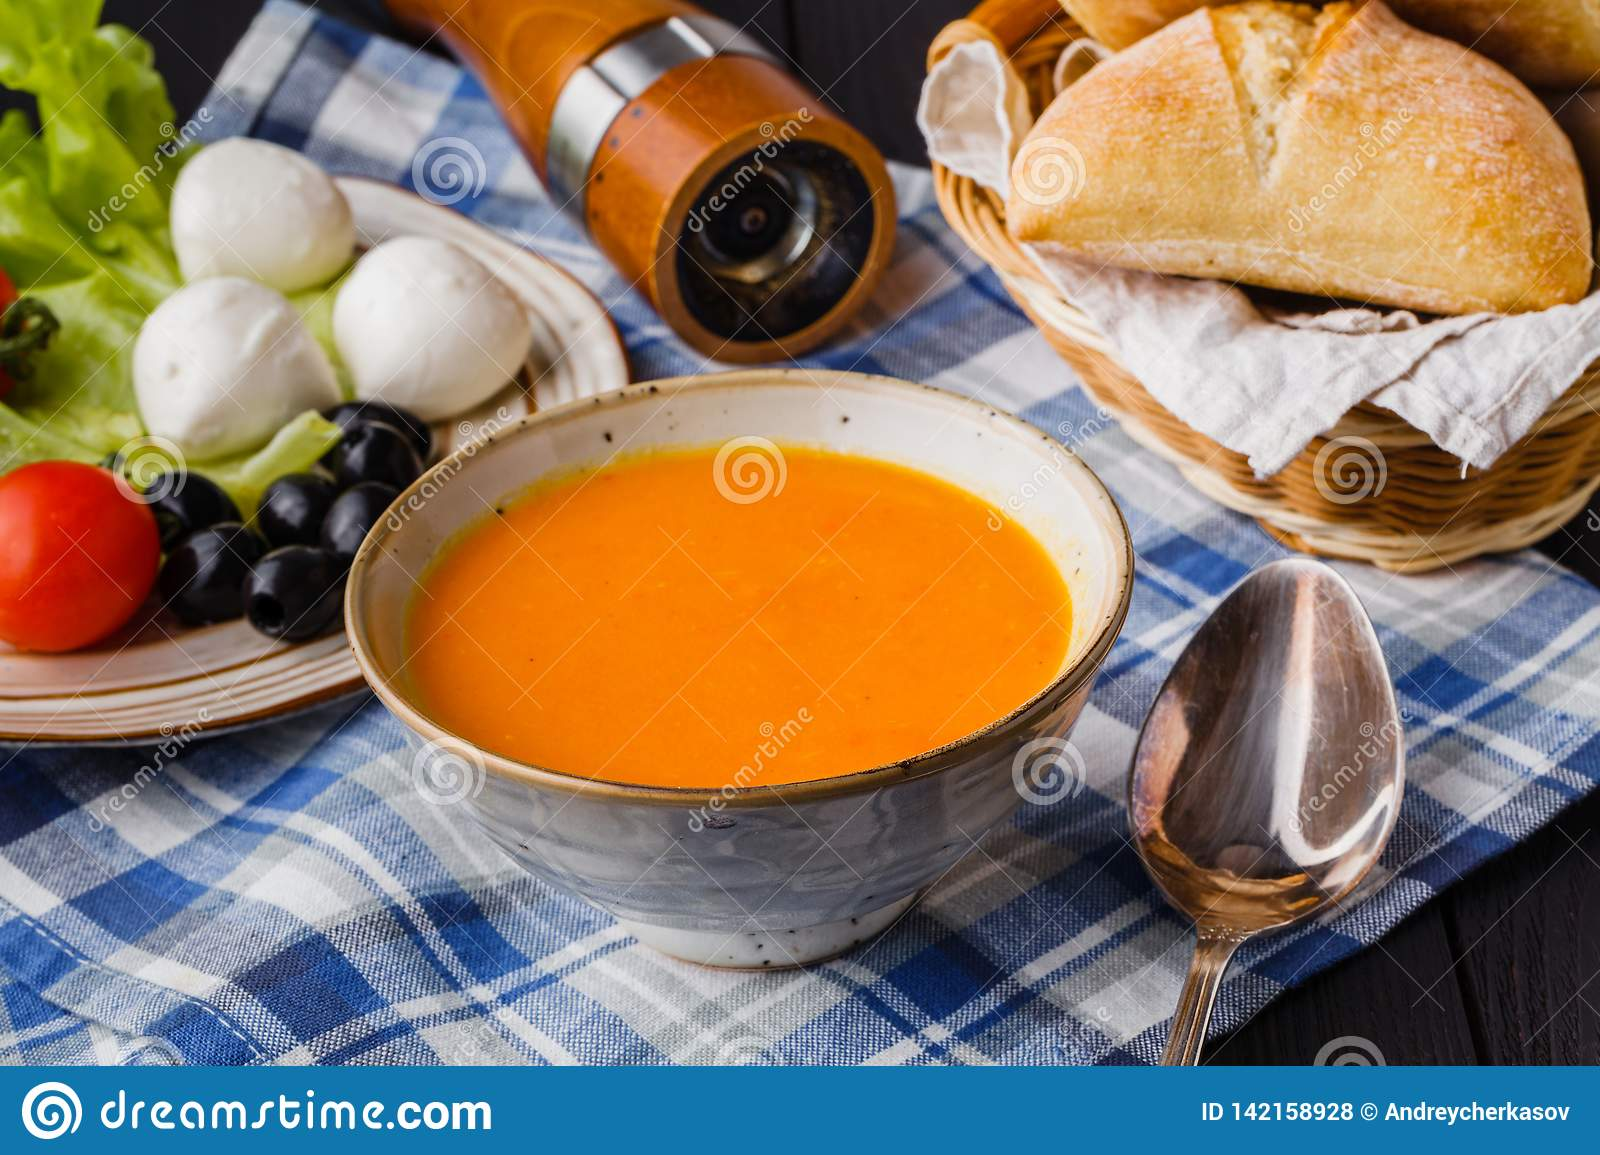 Traditional pumpkin soup, homemade with bread